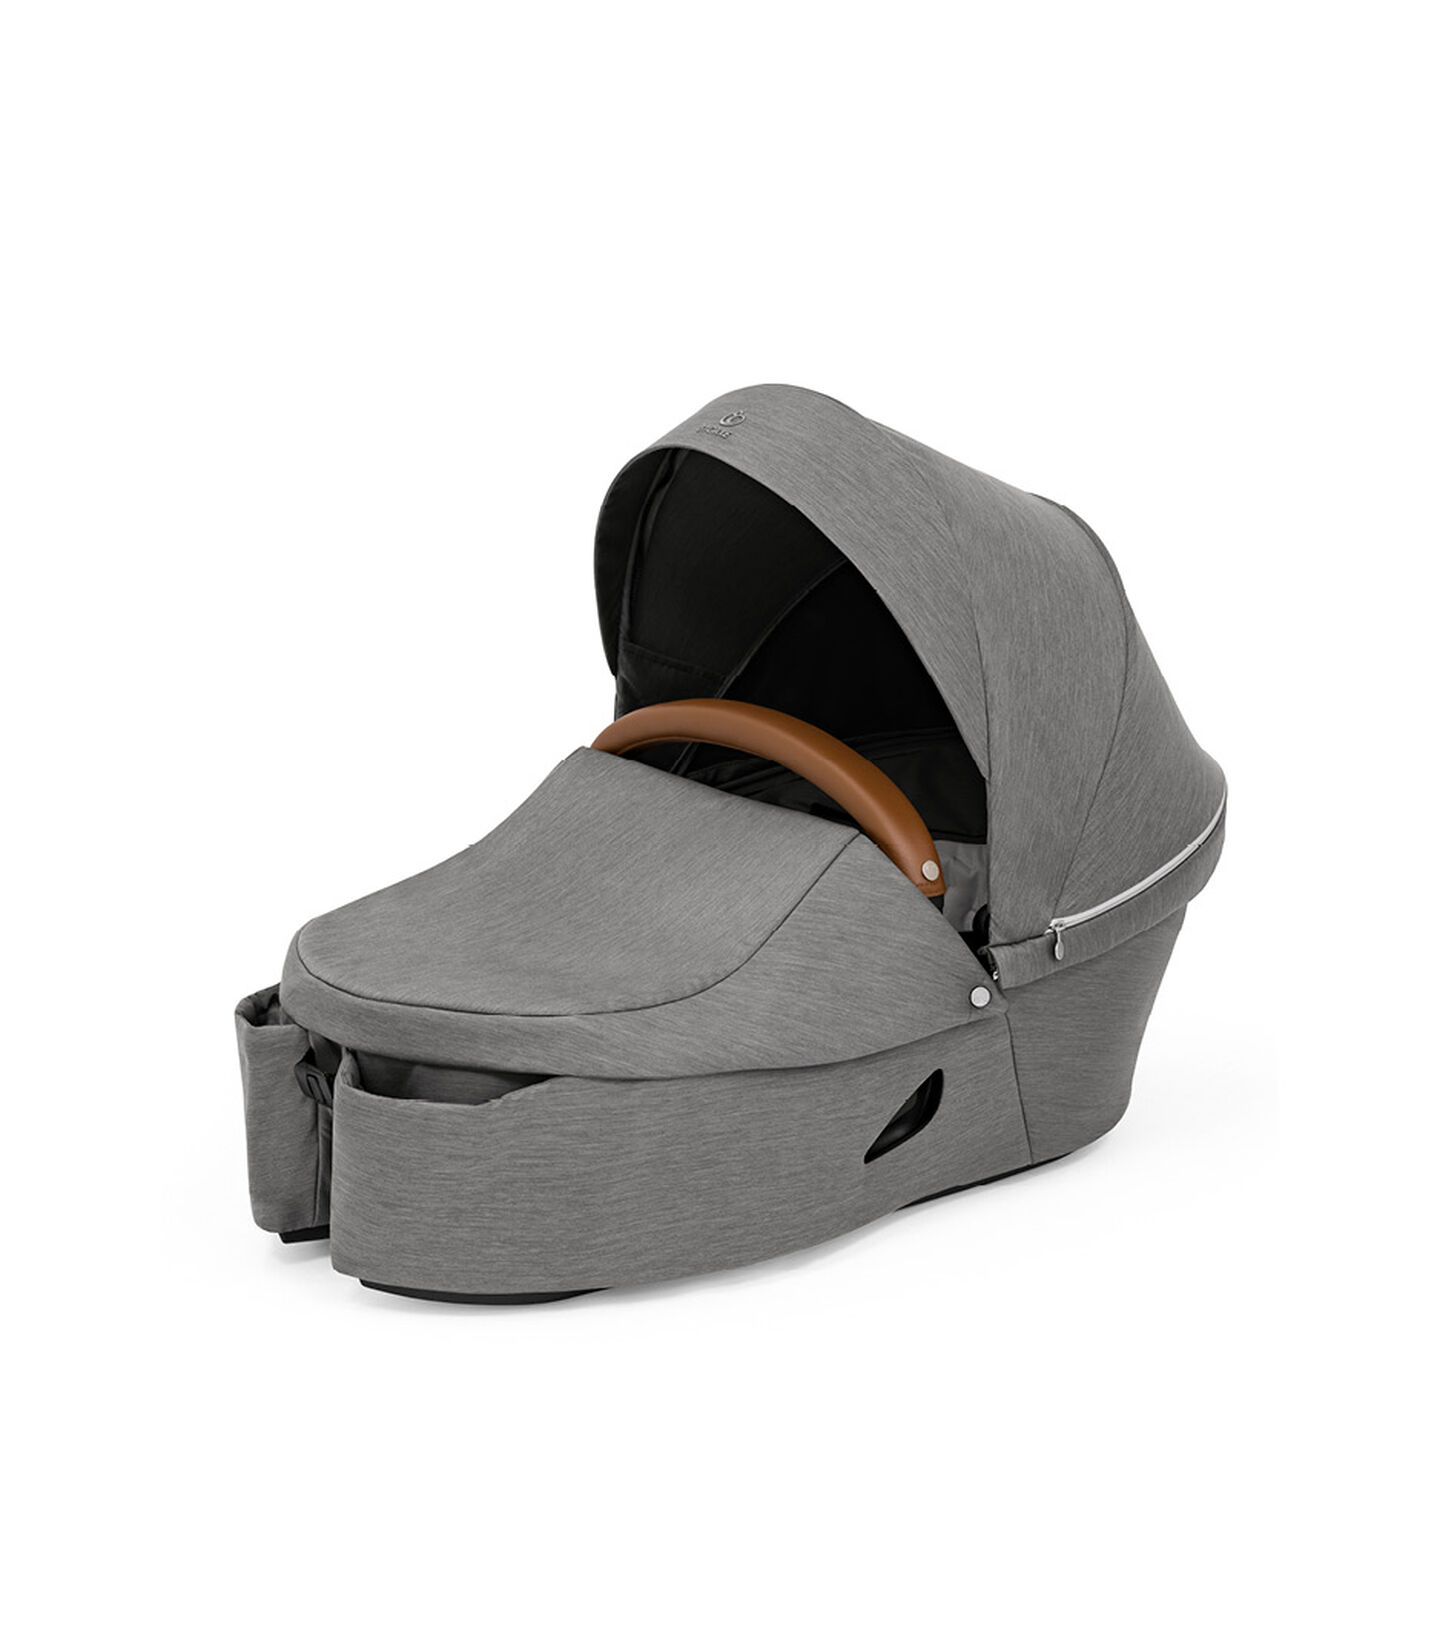 Stokke® Xplory® X Carry Cot Modern Grey, Modern Grey, mainview view 2